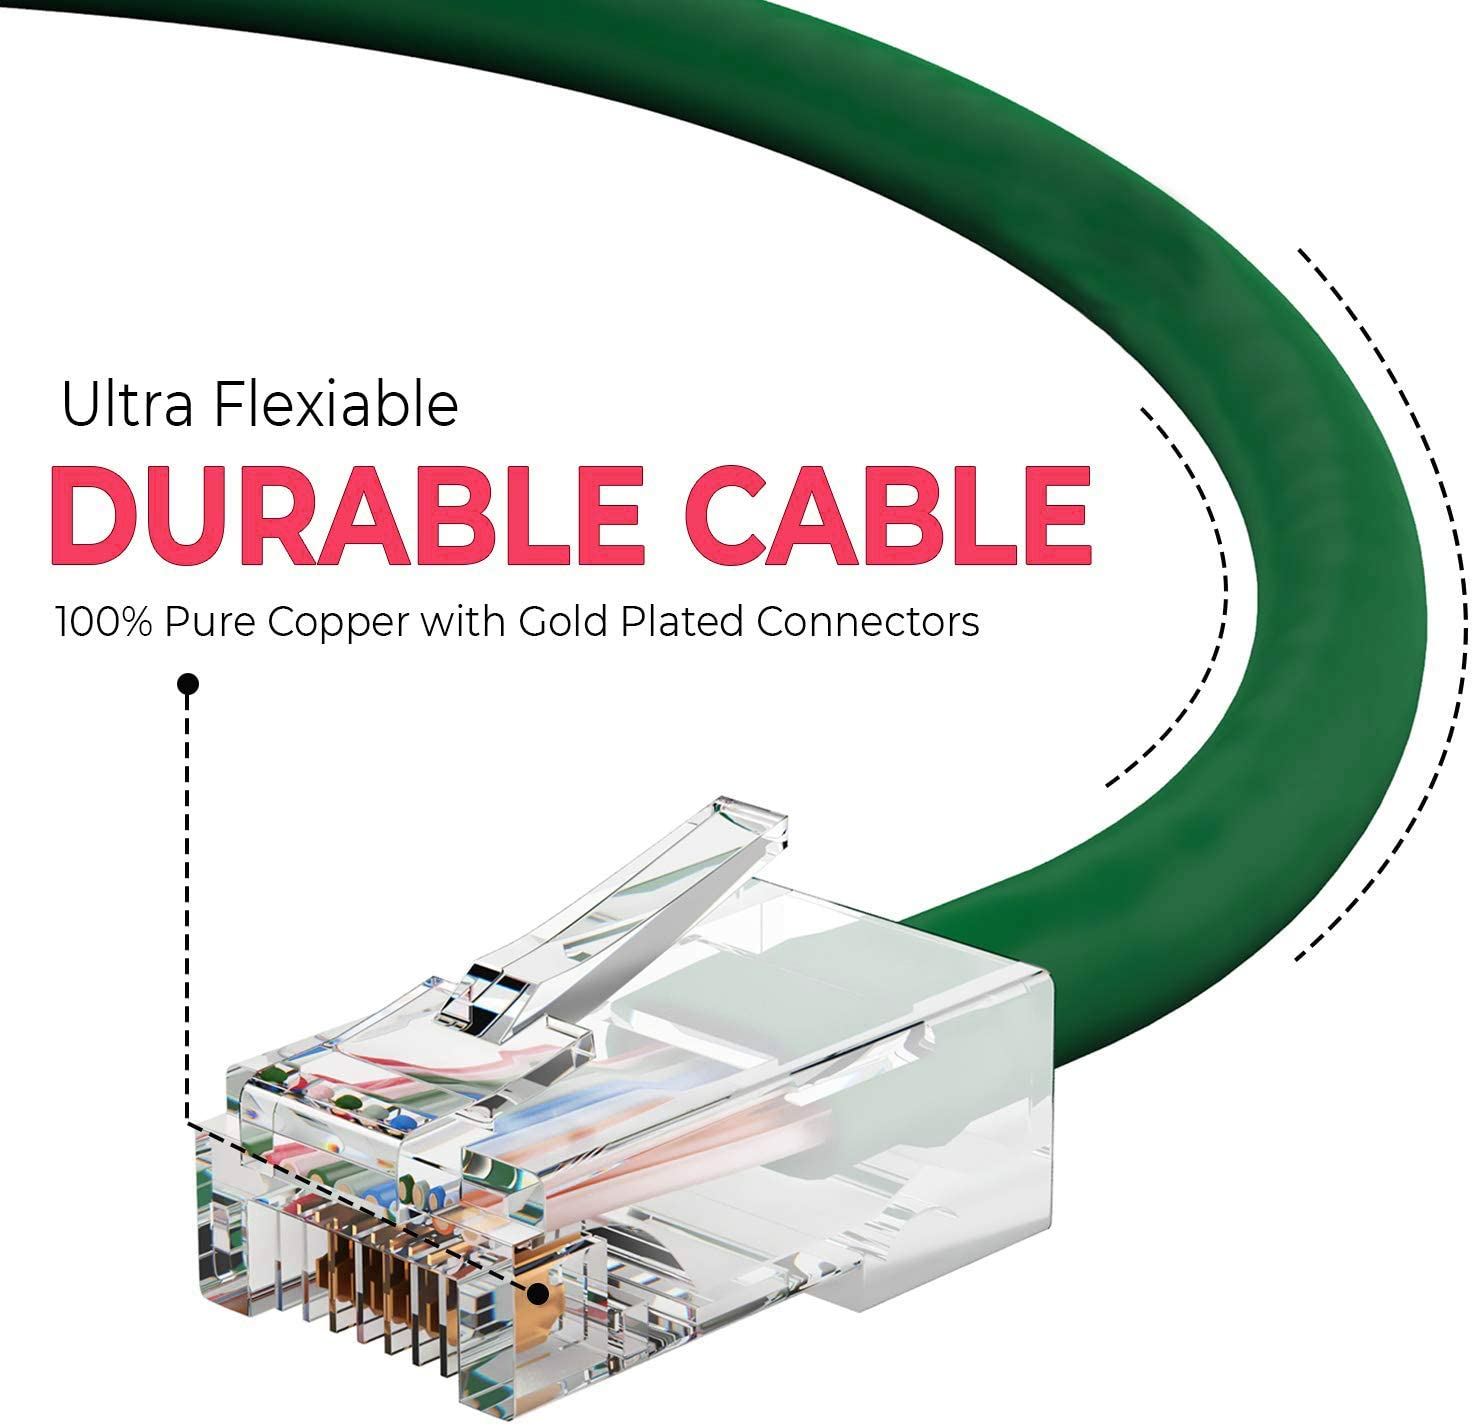 50 Pack Green BoltLion BL-698585 Bootless Cat5e RJ45 Ethernet Cable 7 Feet Professional Series 350MHZ 1Gbps Network//Internet Cable